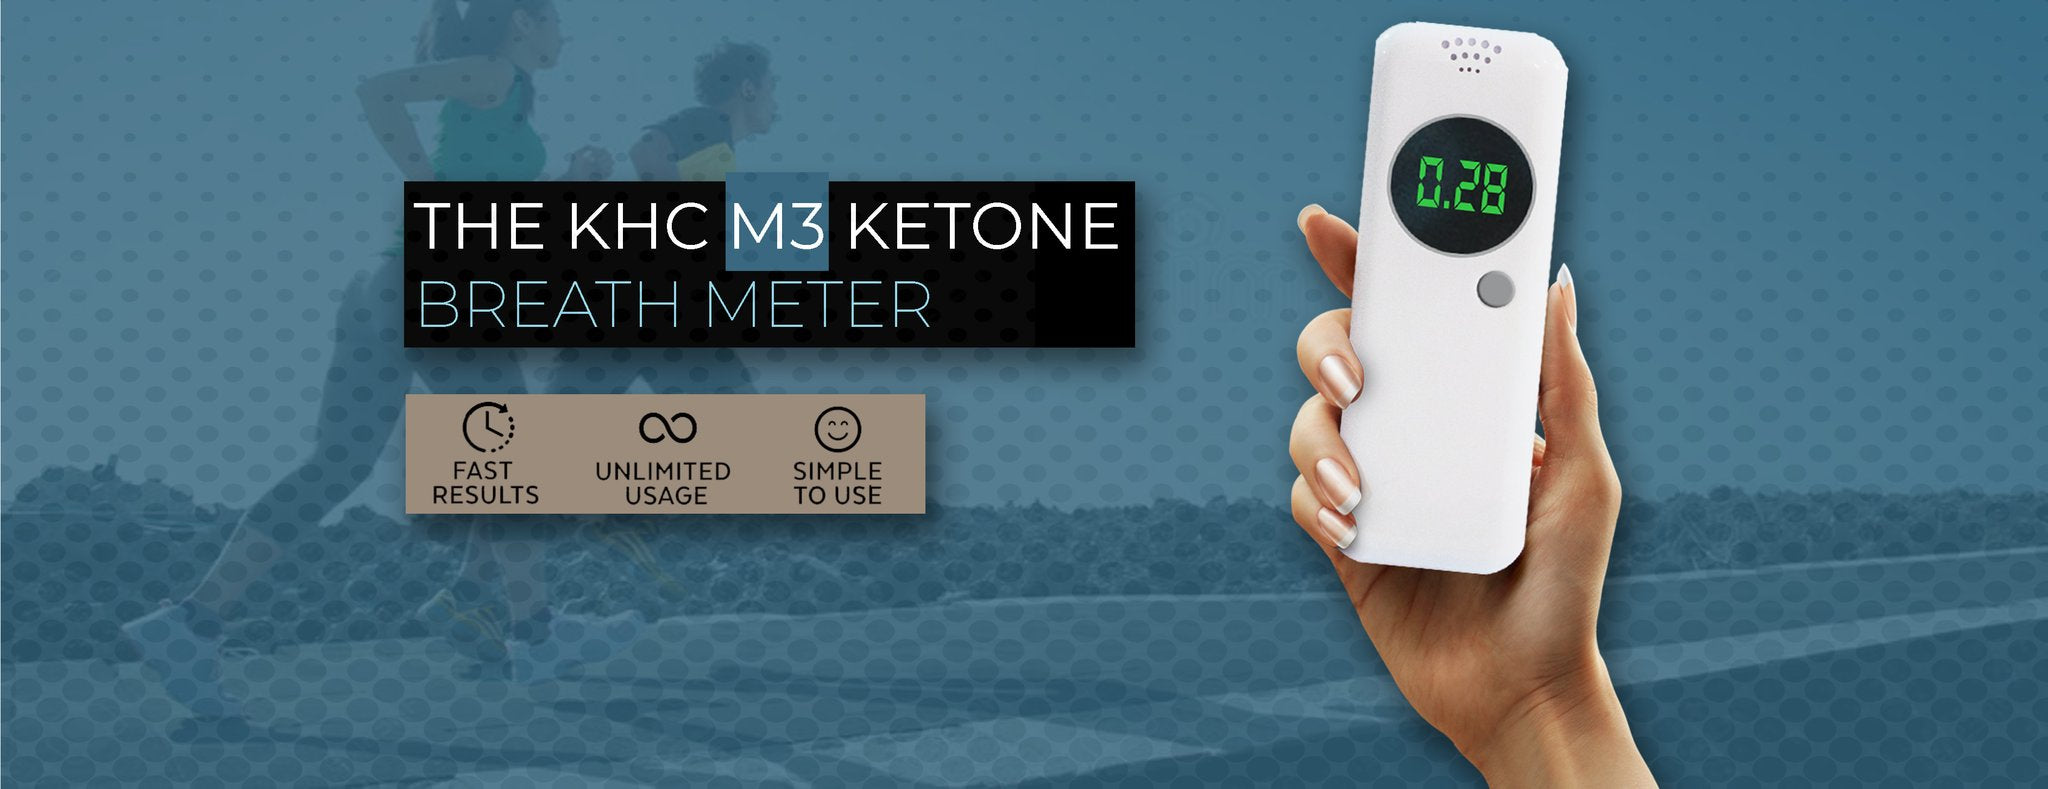 Keto breath meter